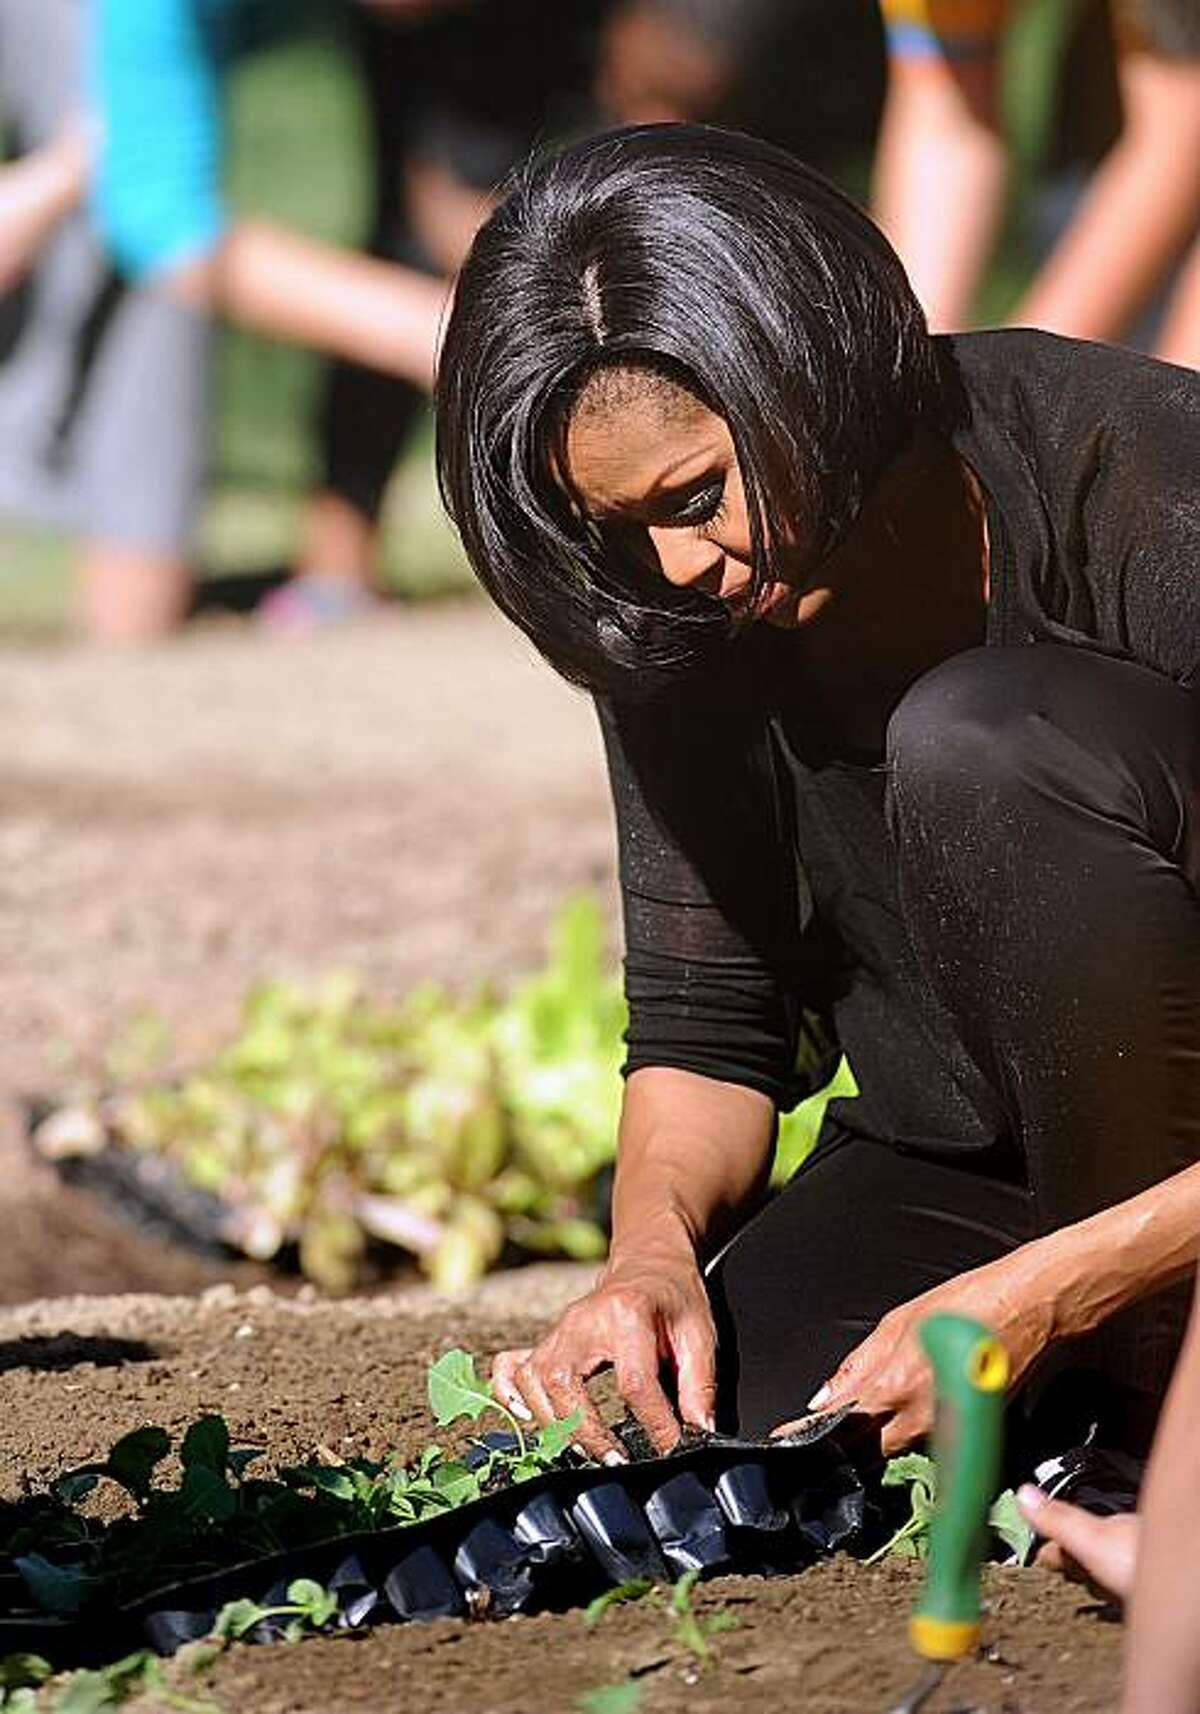 First lady Michelle Obama gets her hands dirty as she plays host to the Spring Garden Planting in the White House Kitchen Garden at the White House in Washington, D.C., on Wednesday, March 31, 2010. (Olivier Douliery/Abaca Press/MCT)